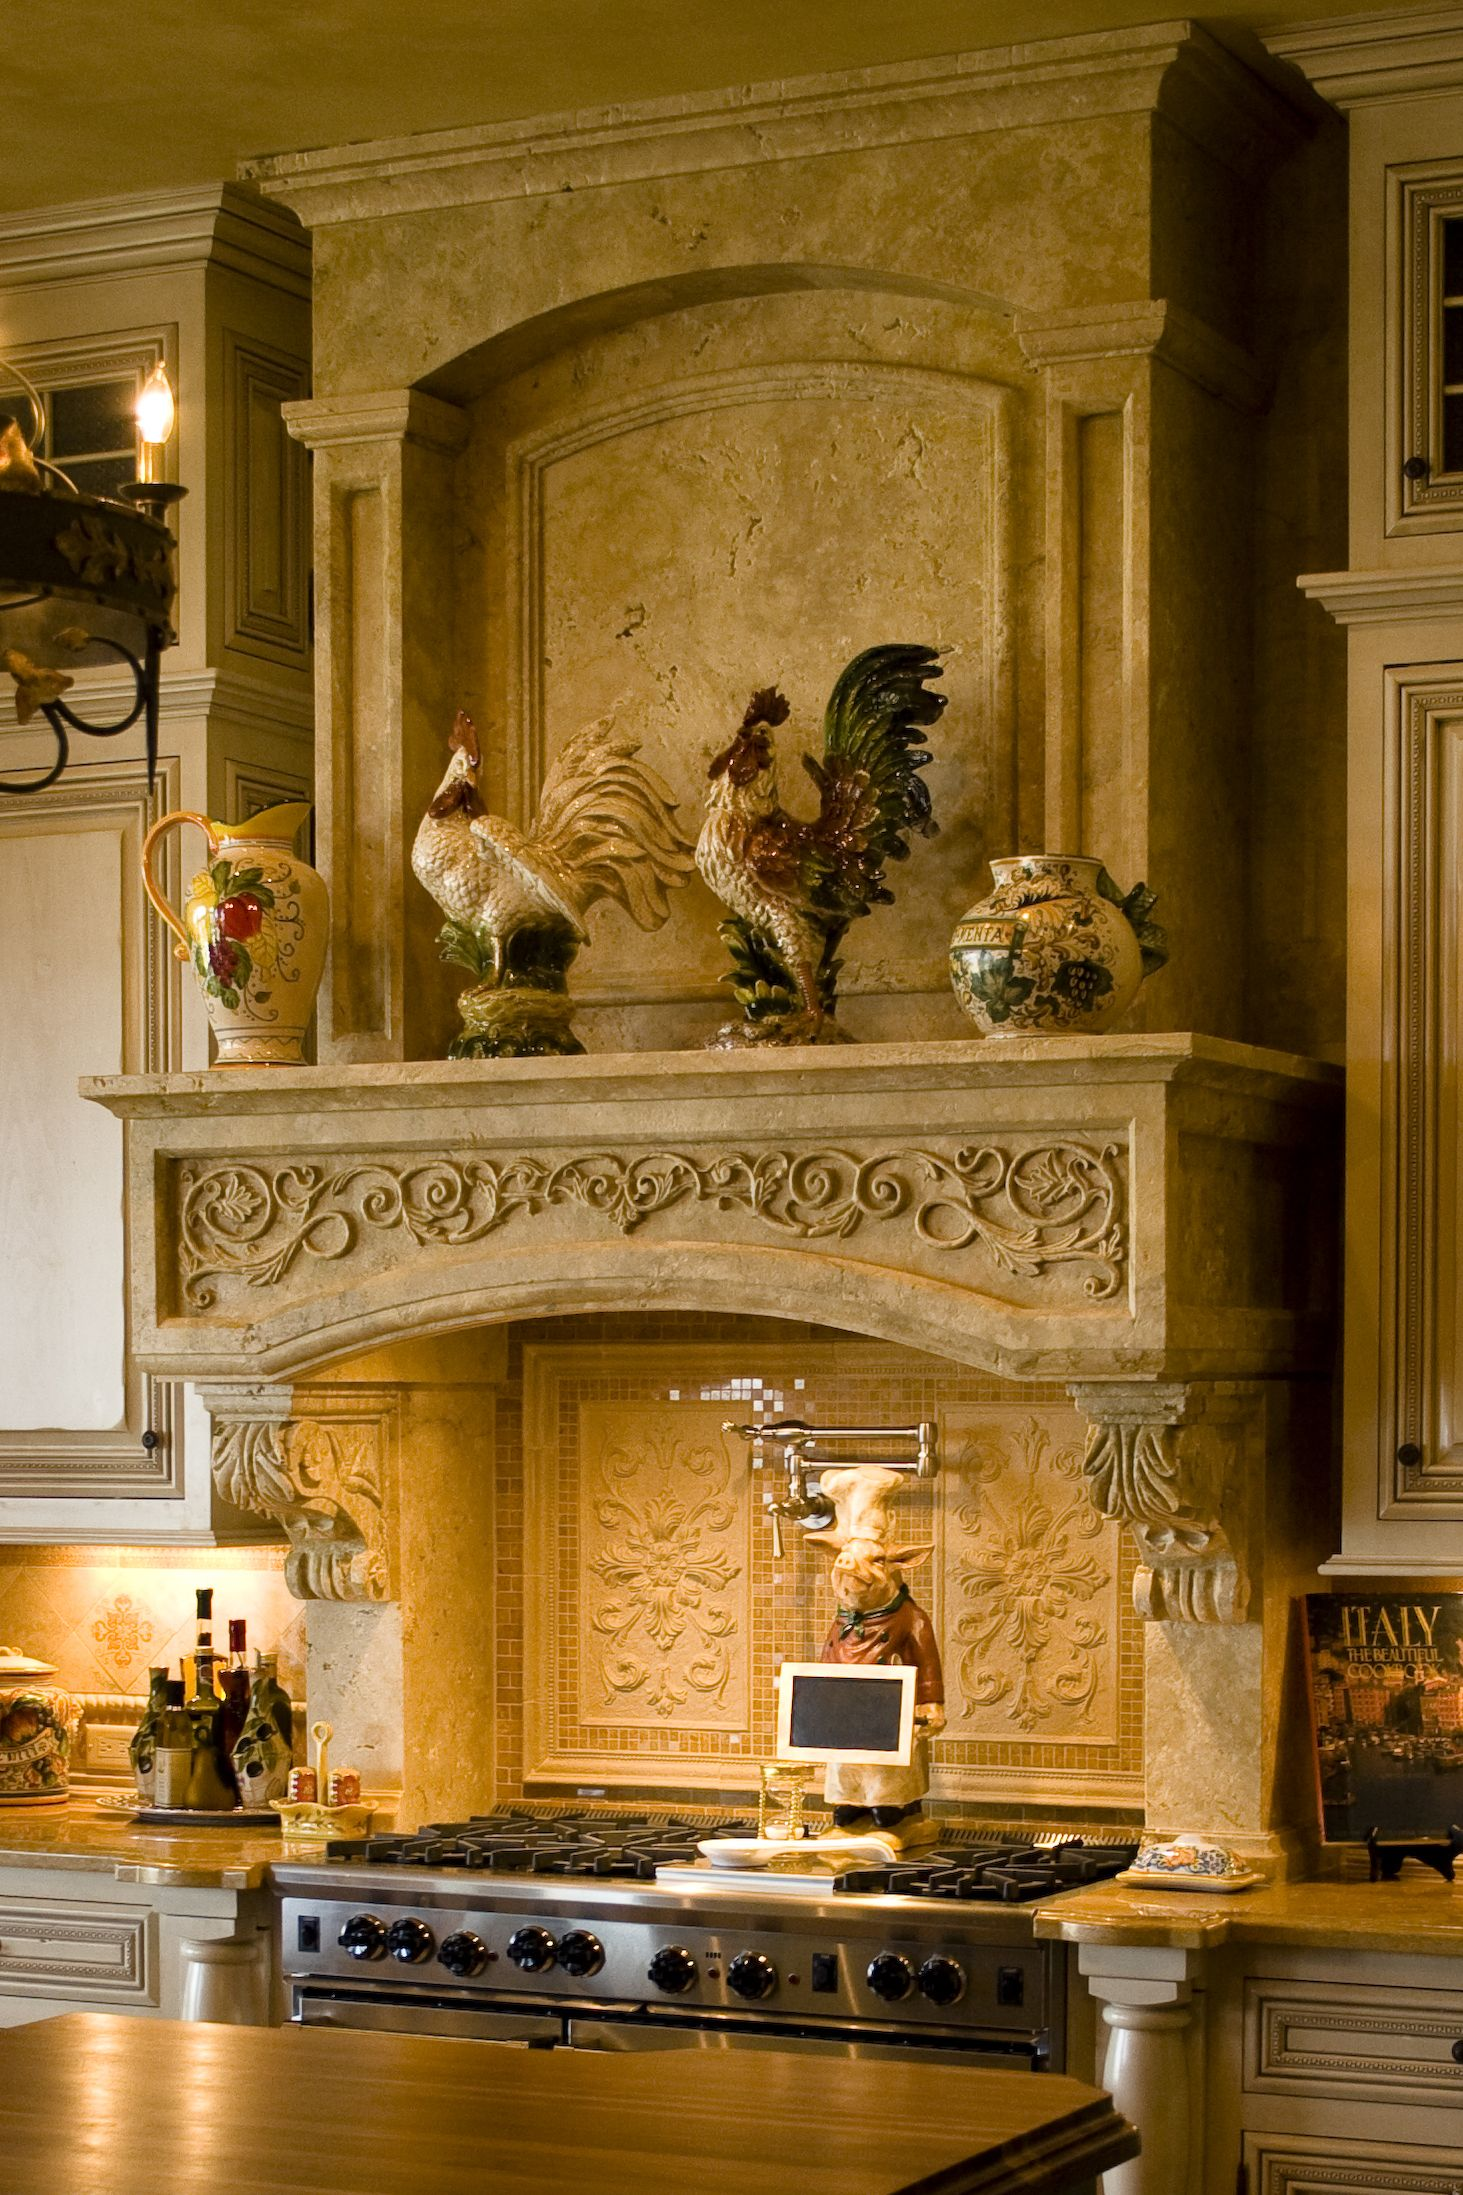 Love the roosters, I only need a mother hen, and a rooster, maybe some baby chicks as well?  (I always have liked them for kitchen decor).